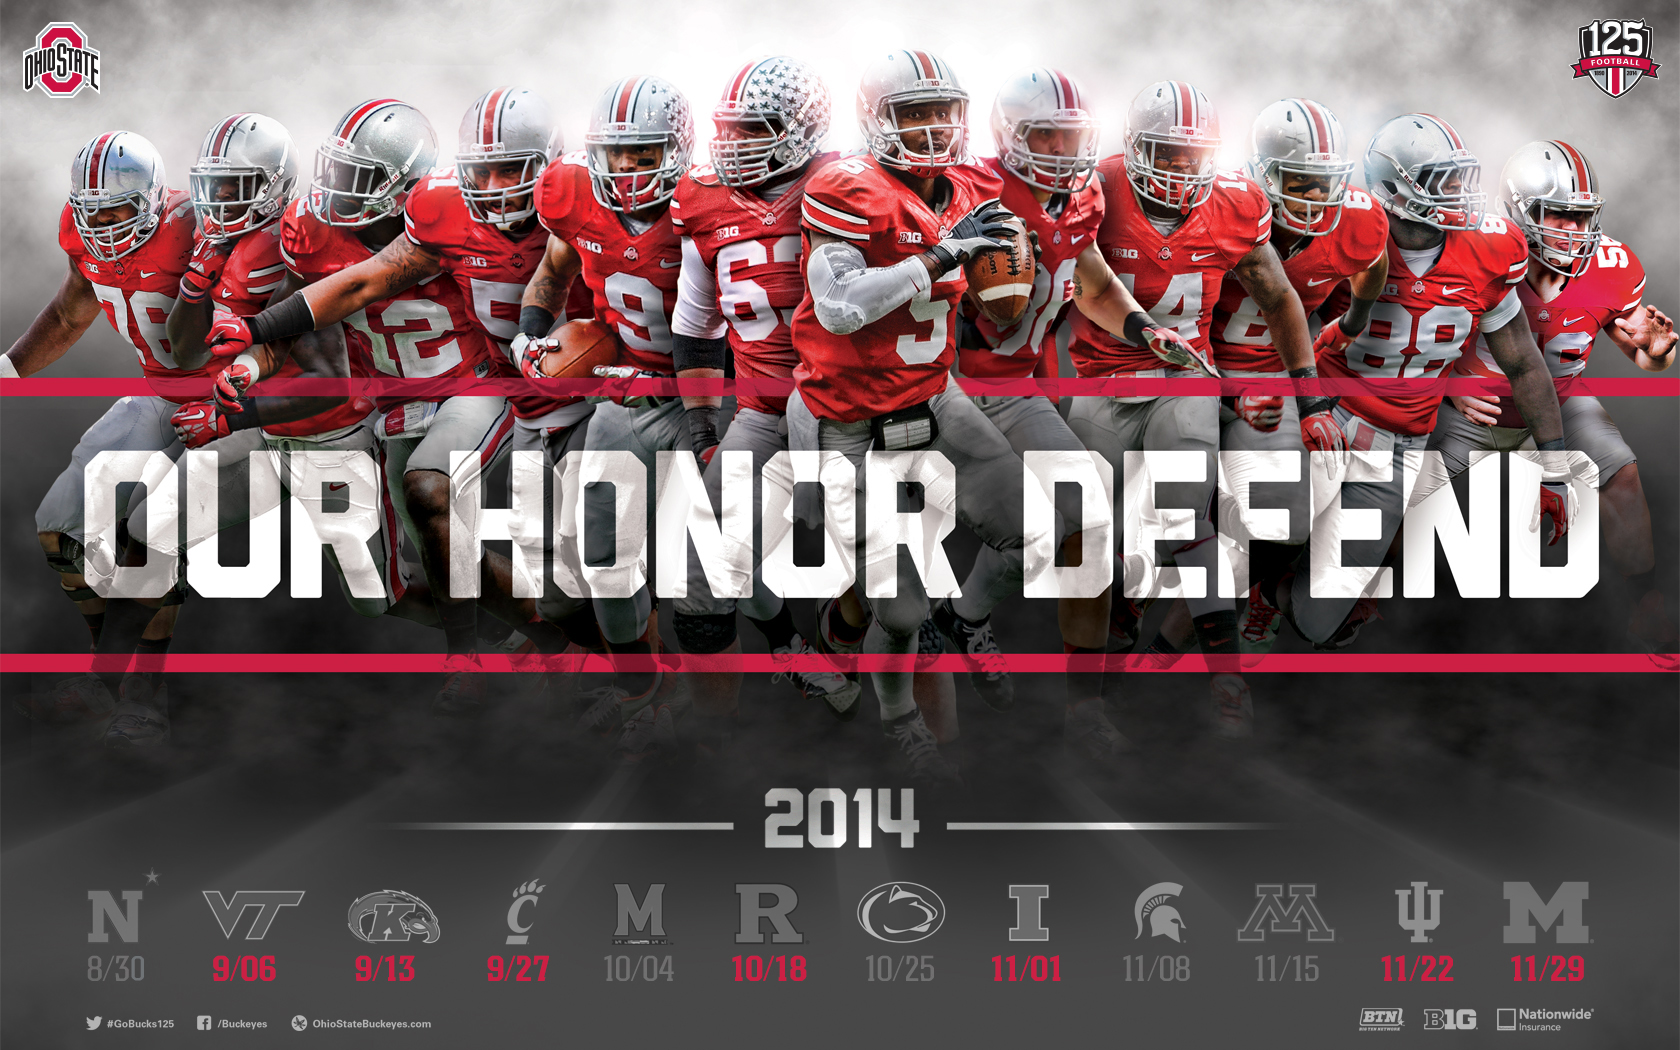 Download The Ohio State Football 2014 Schedule Poster for Printing and 1680x1050